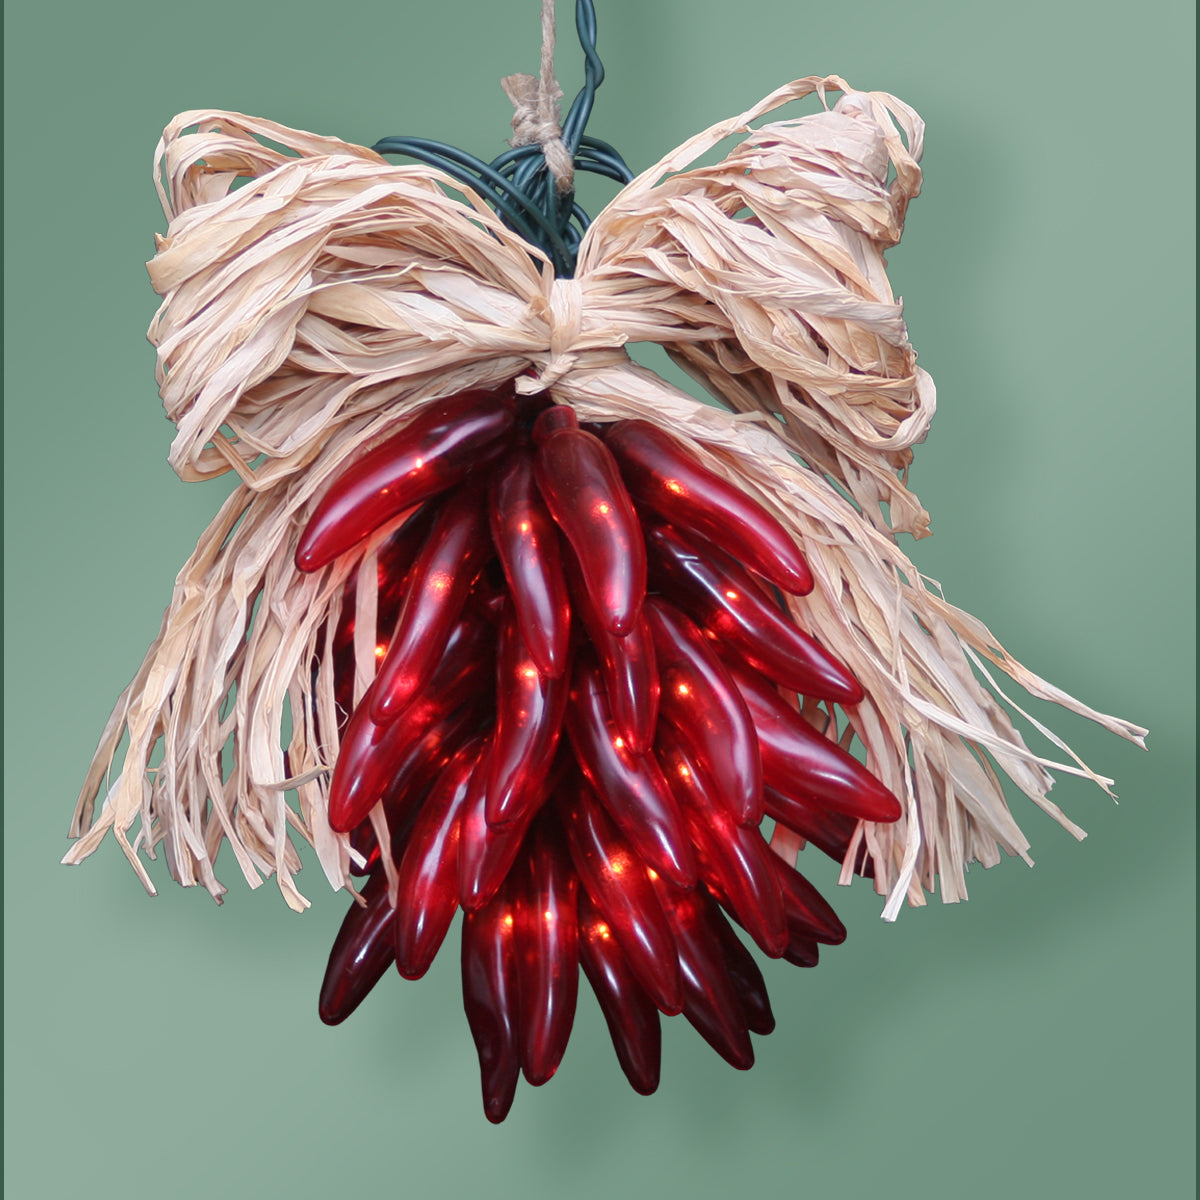 Chile Pepper Lighted Rista - 35 Lights - Red